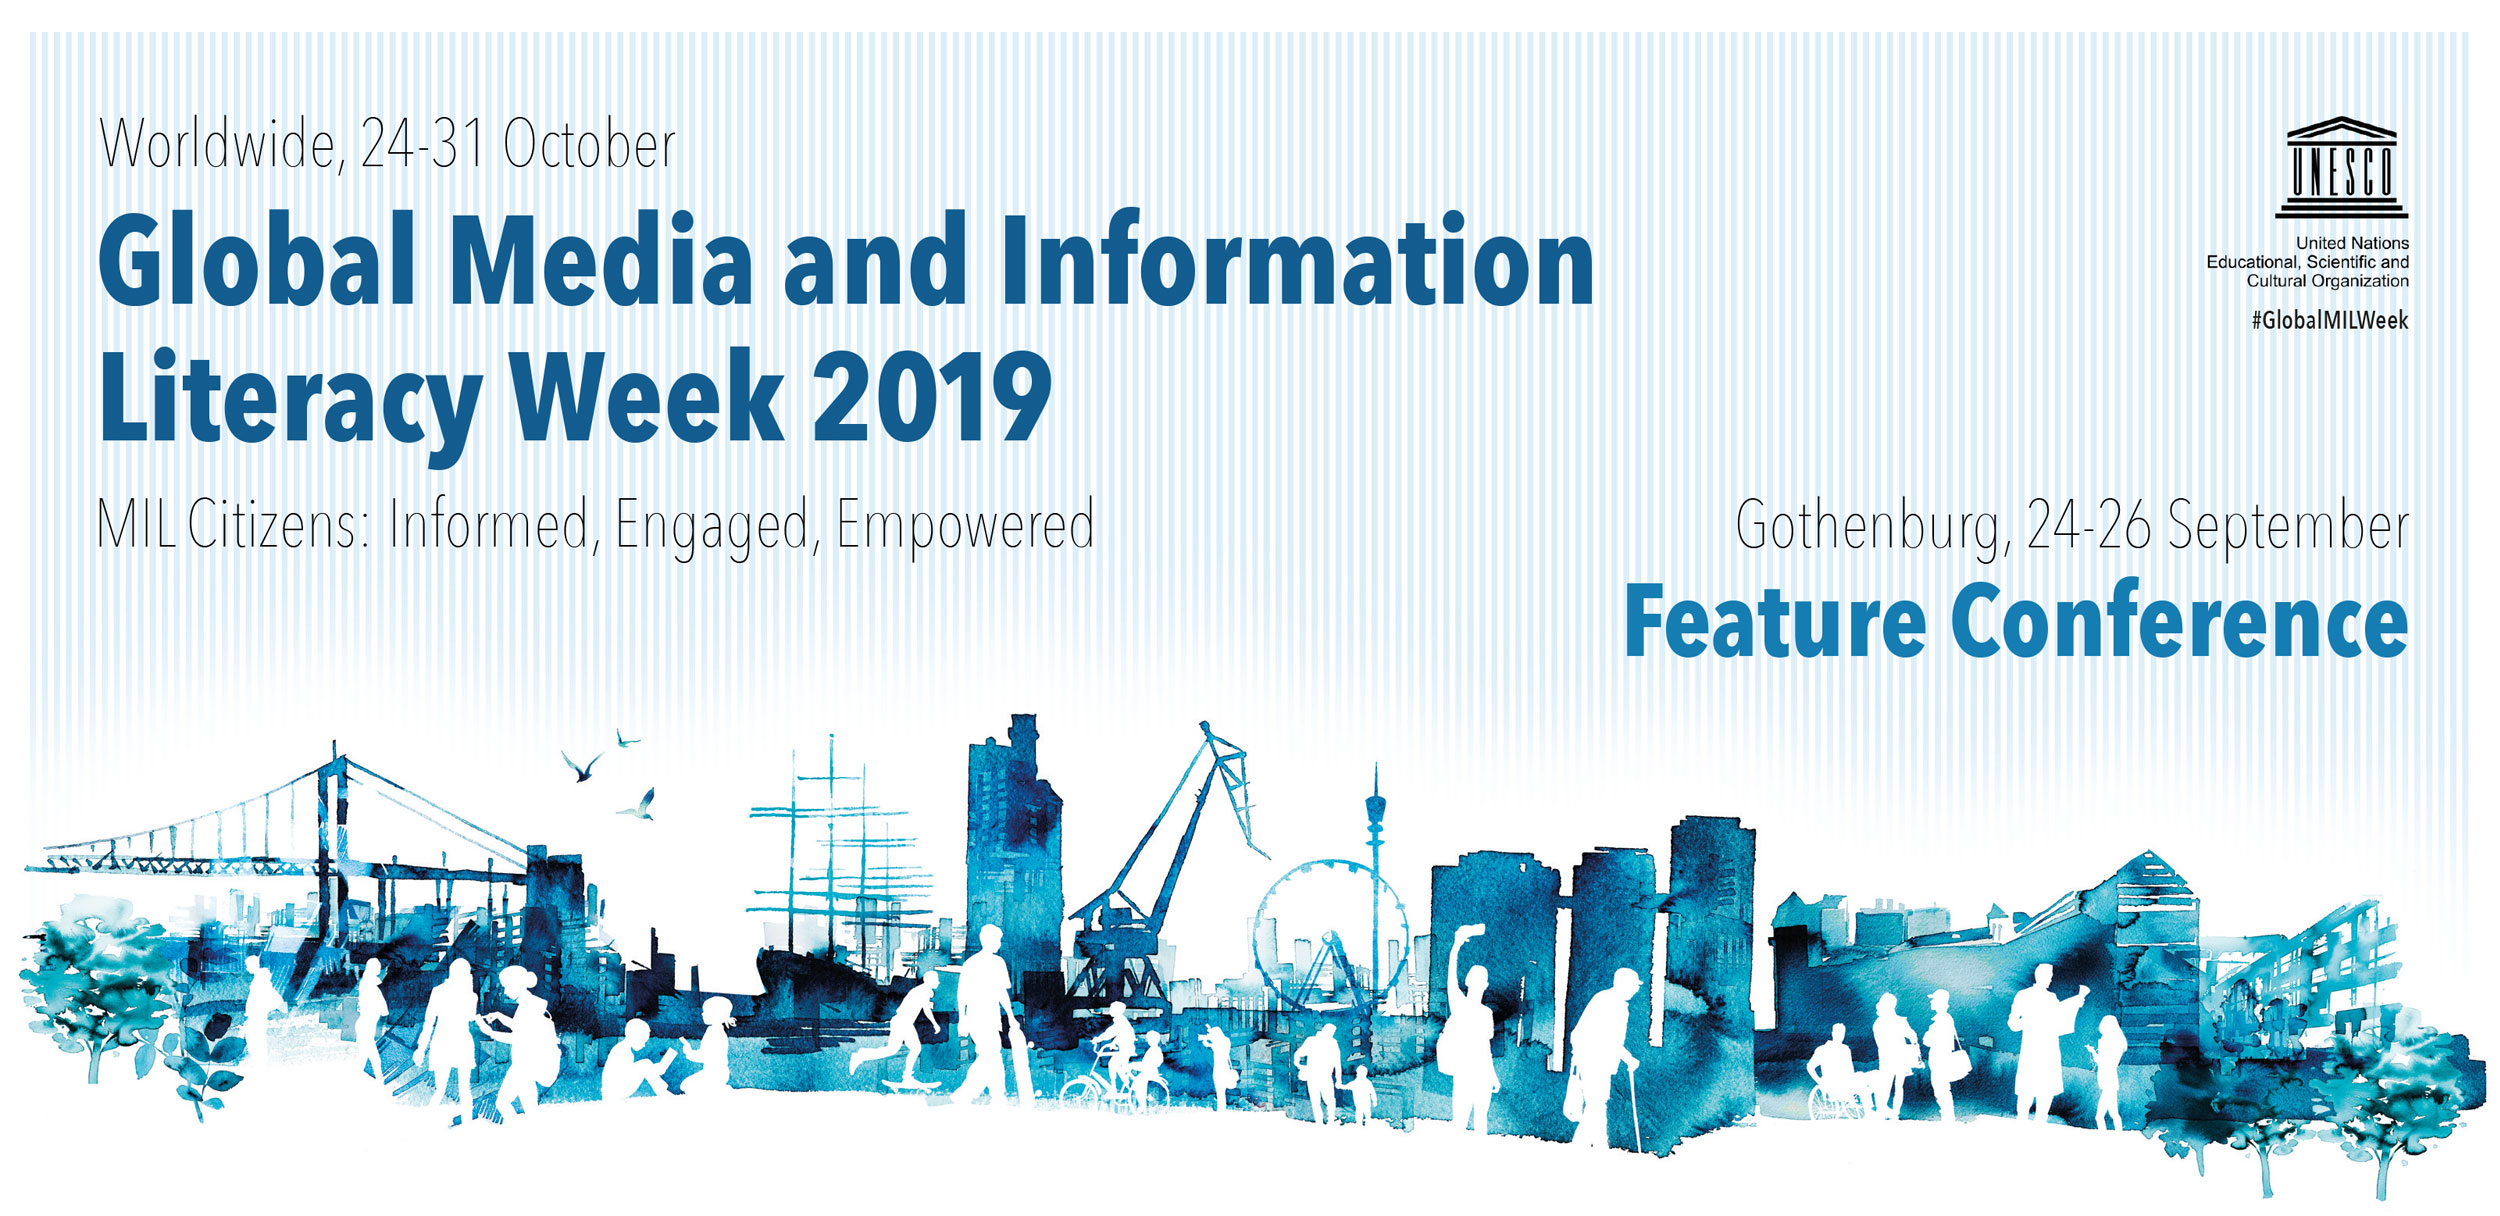 Global Media and Information Literacy Week 2019 Feature